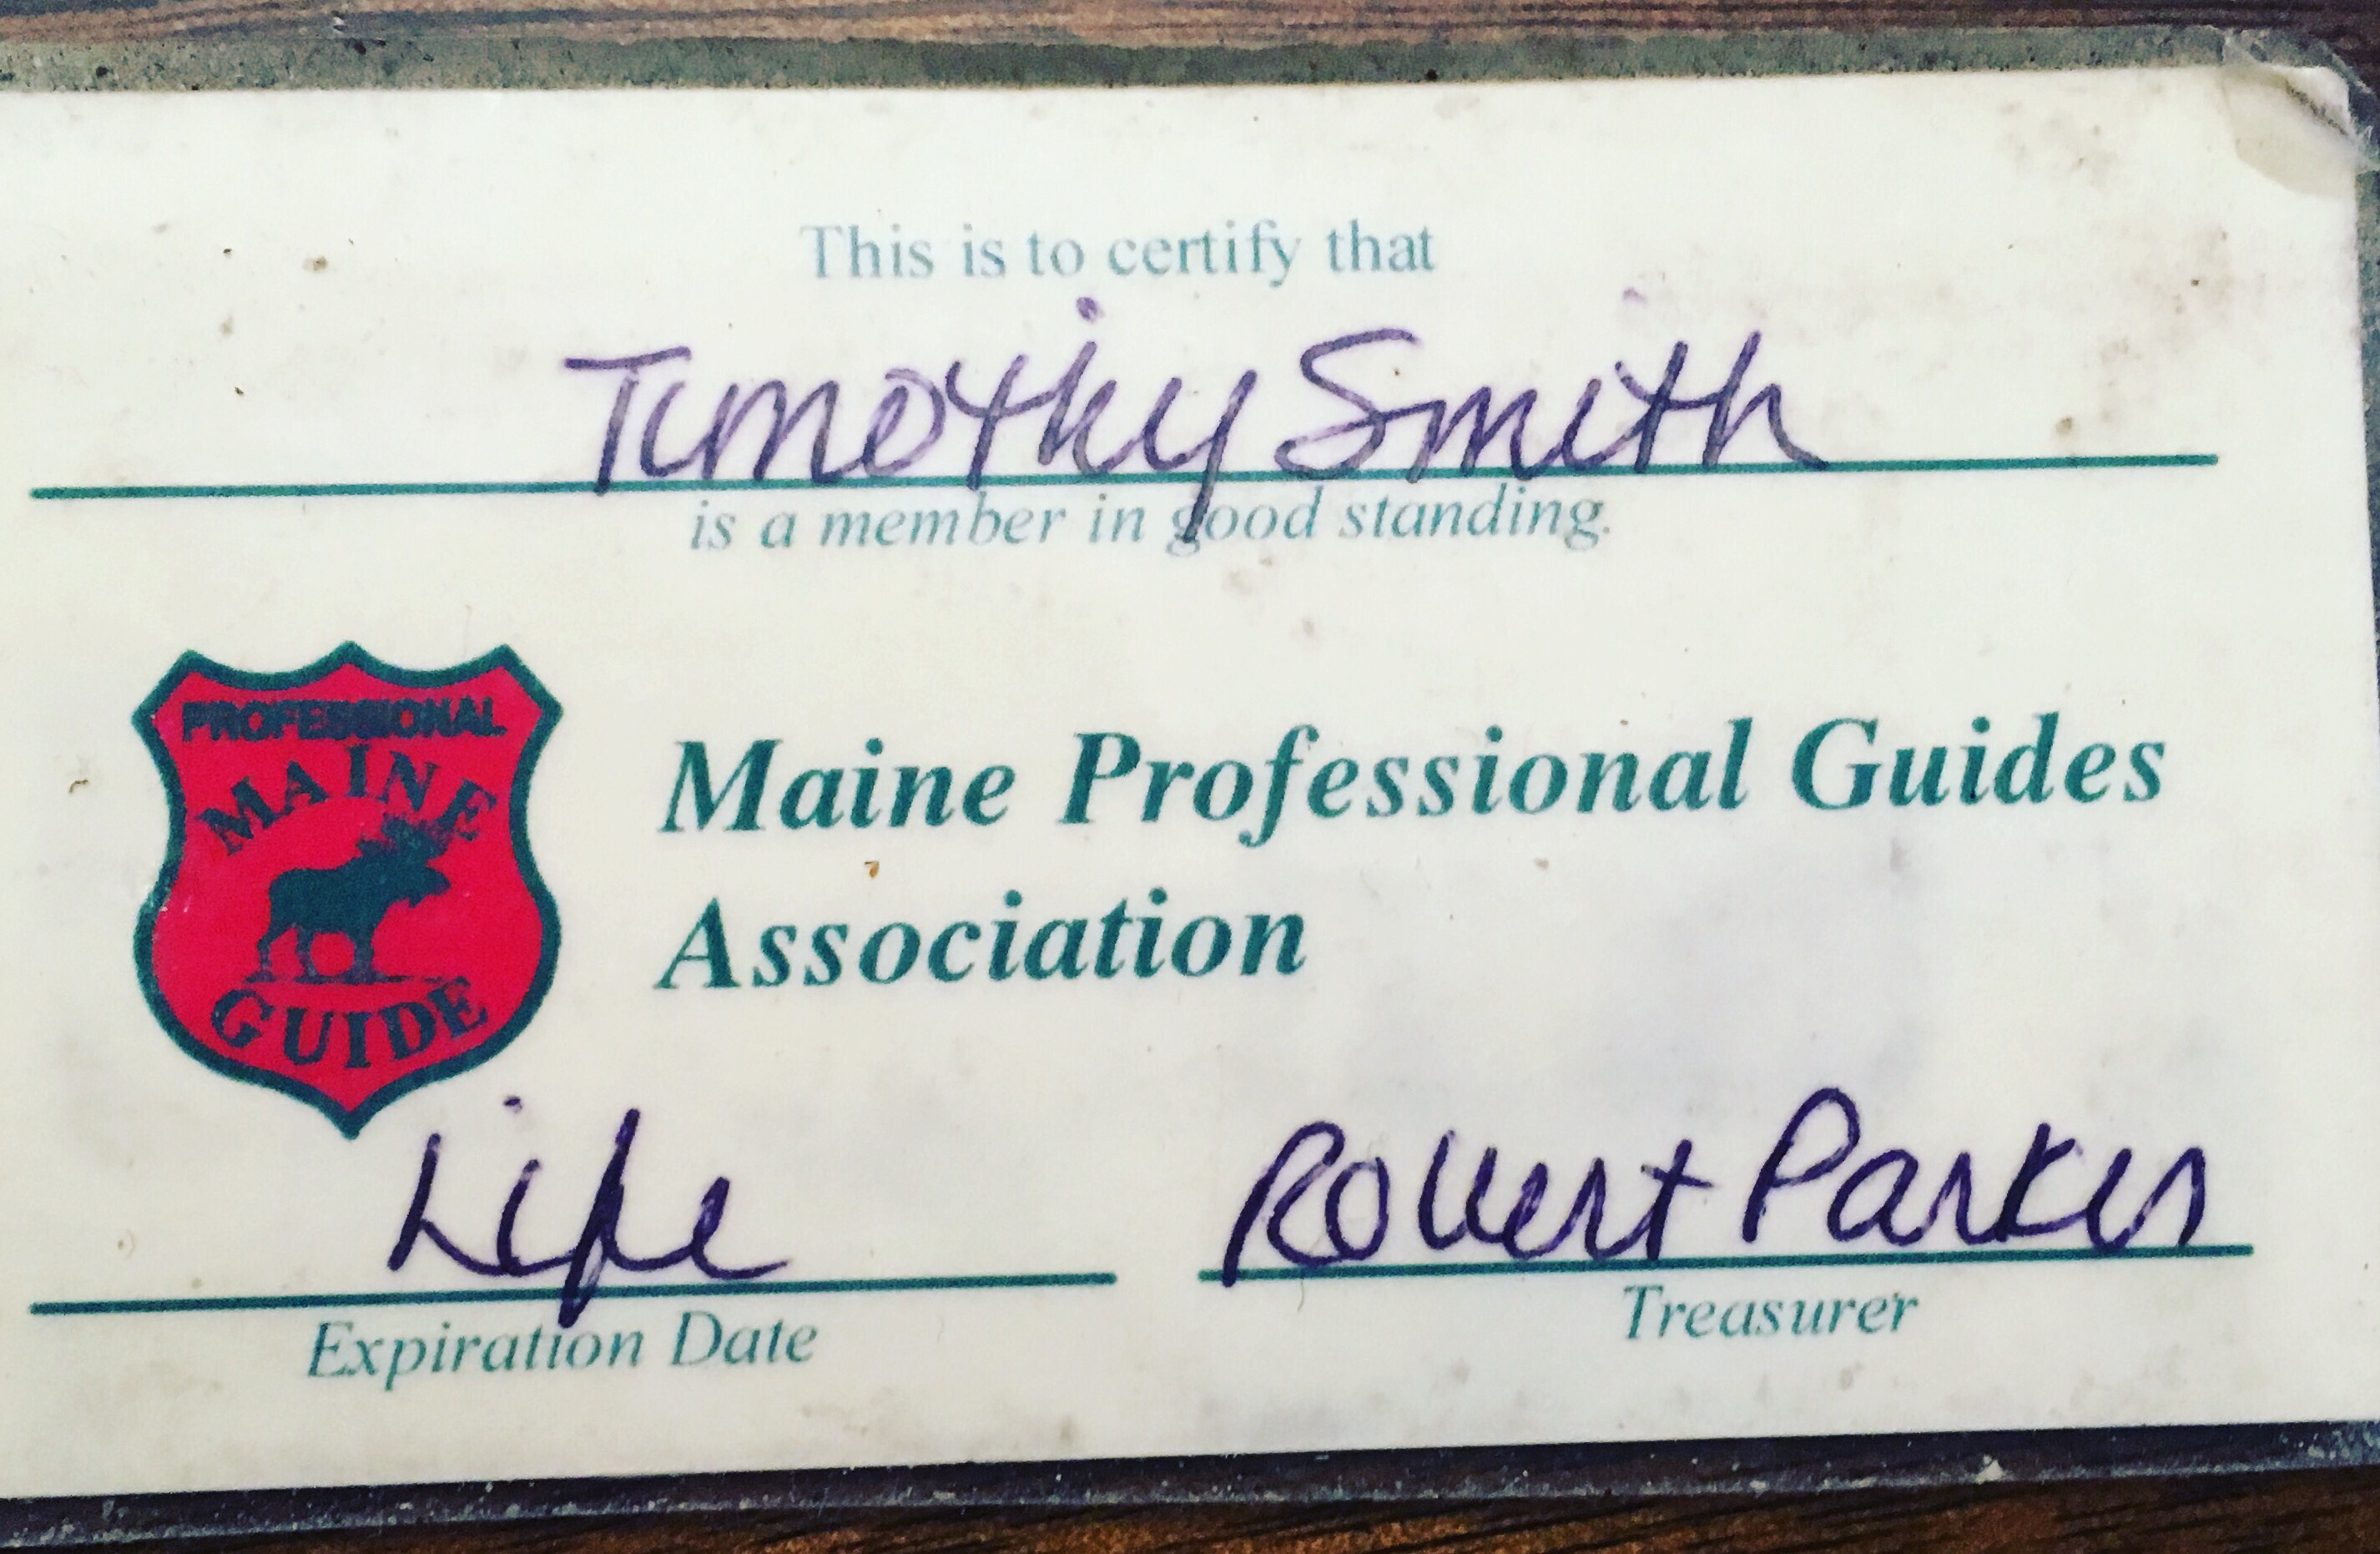 Life Member Of The Maine Professional Guides Association Since 2001